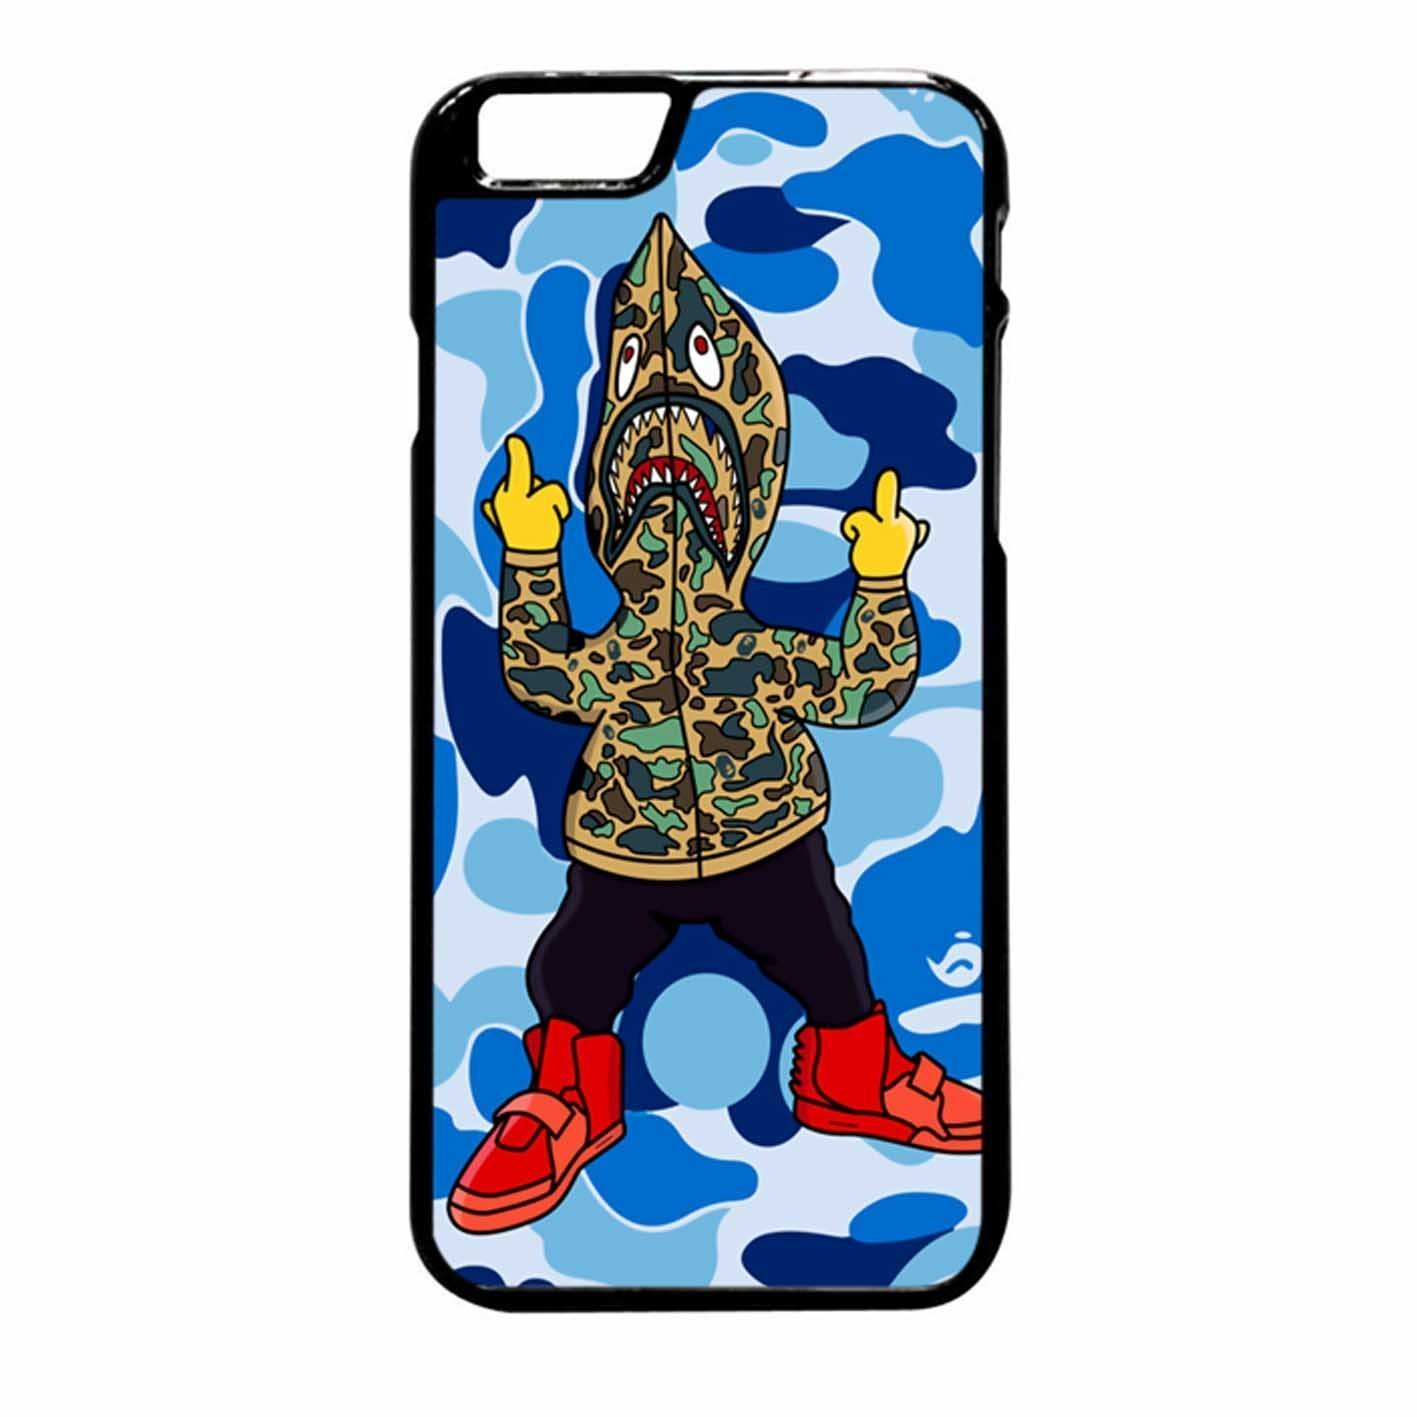 newest 8ebbf 8450a Bape Shark Hoodie Case / Color Black Rubber / Device iPhone 6 Plus/6s Plus